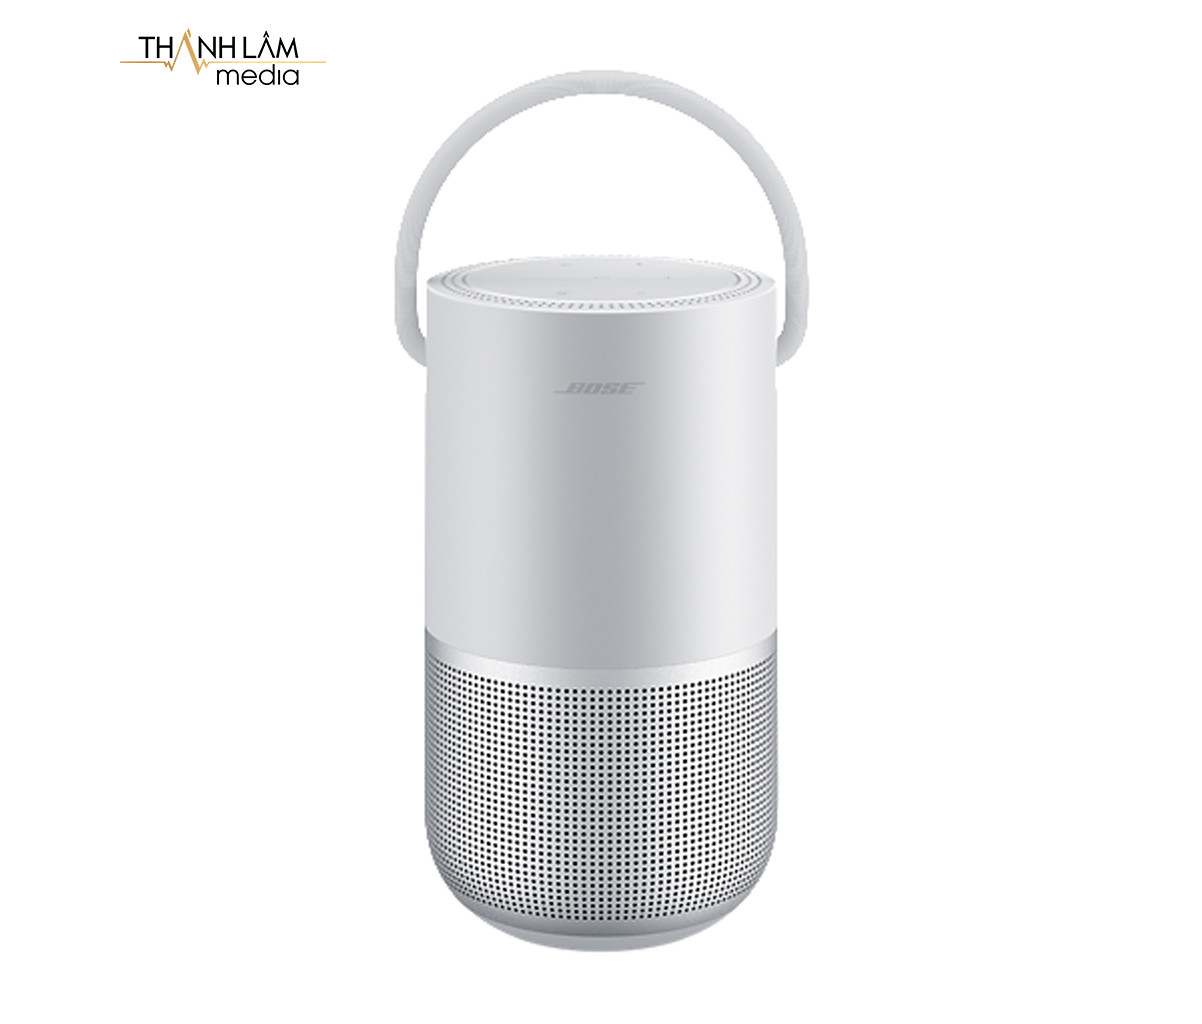 Loa Bose Portable Home Speaker Trang 5